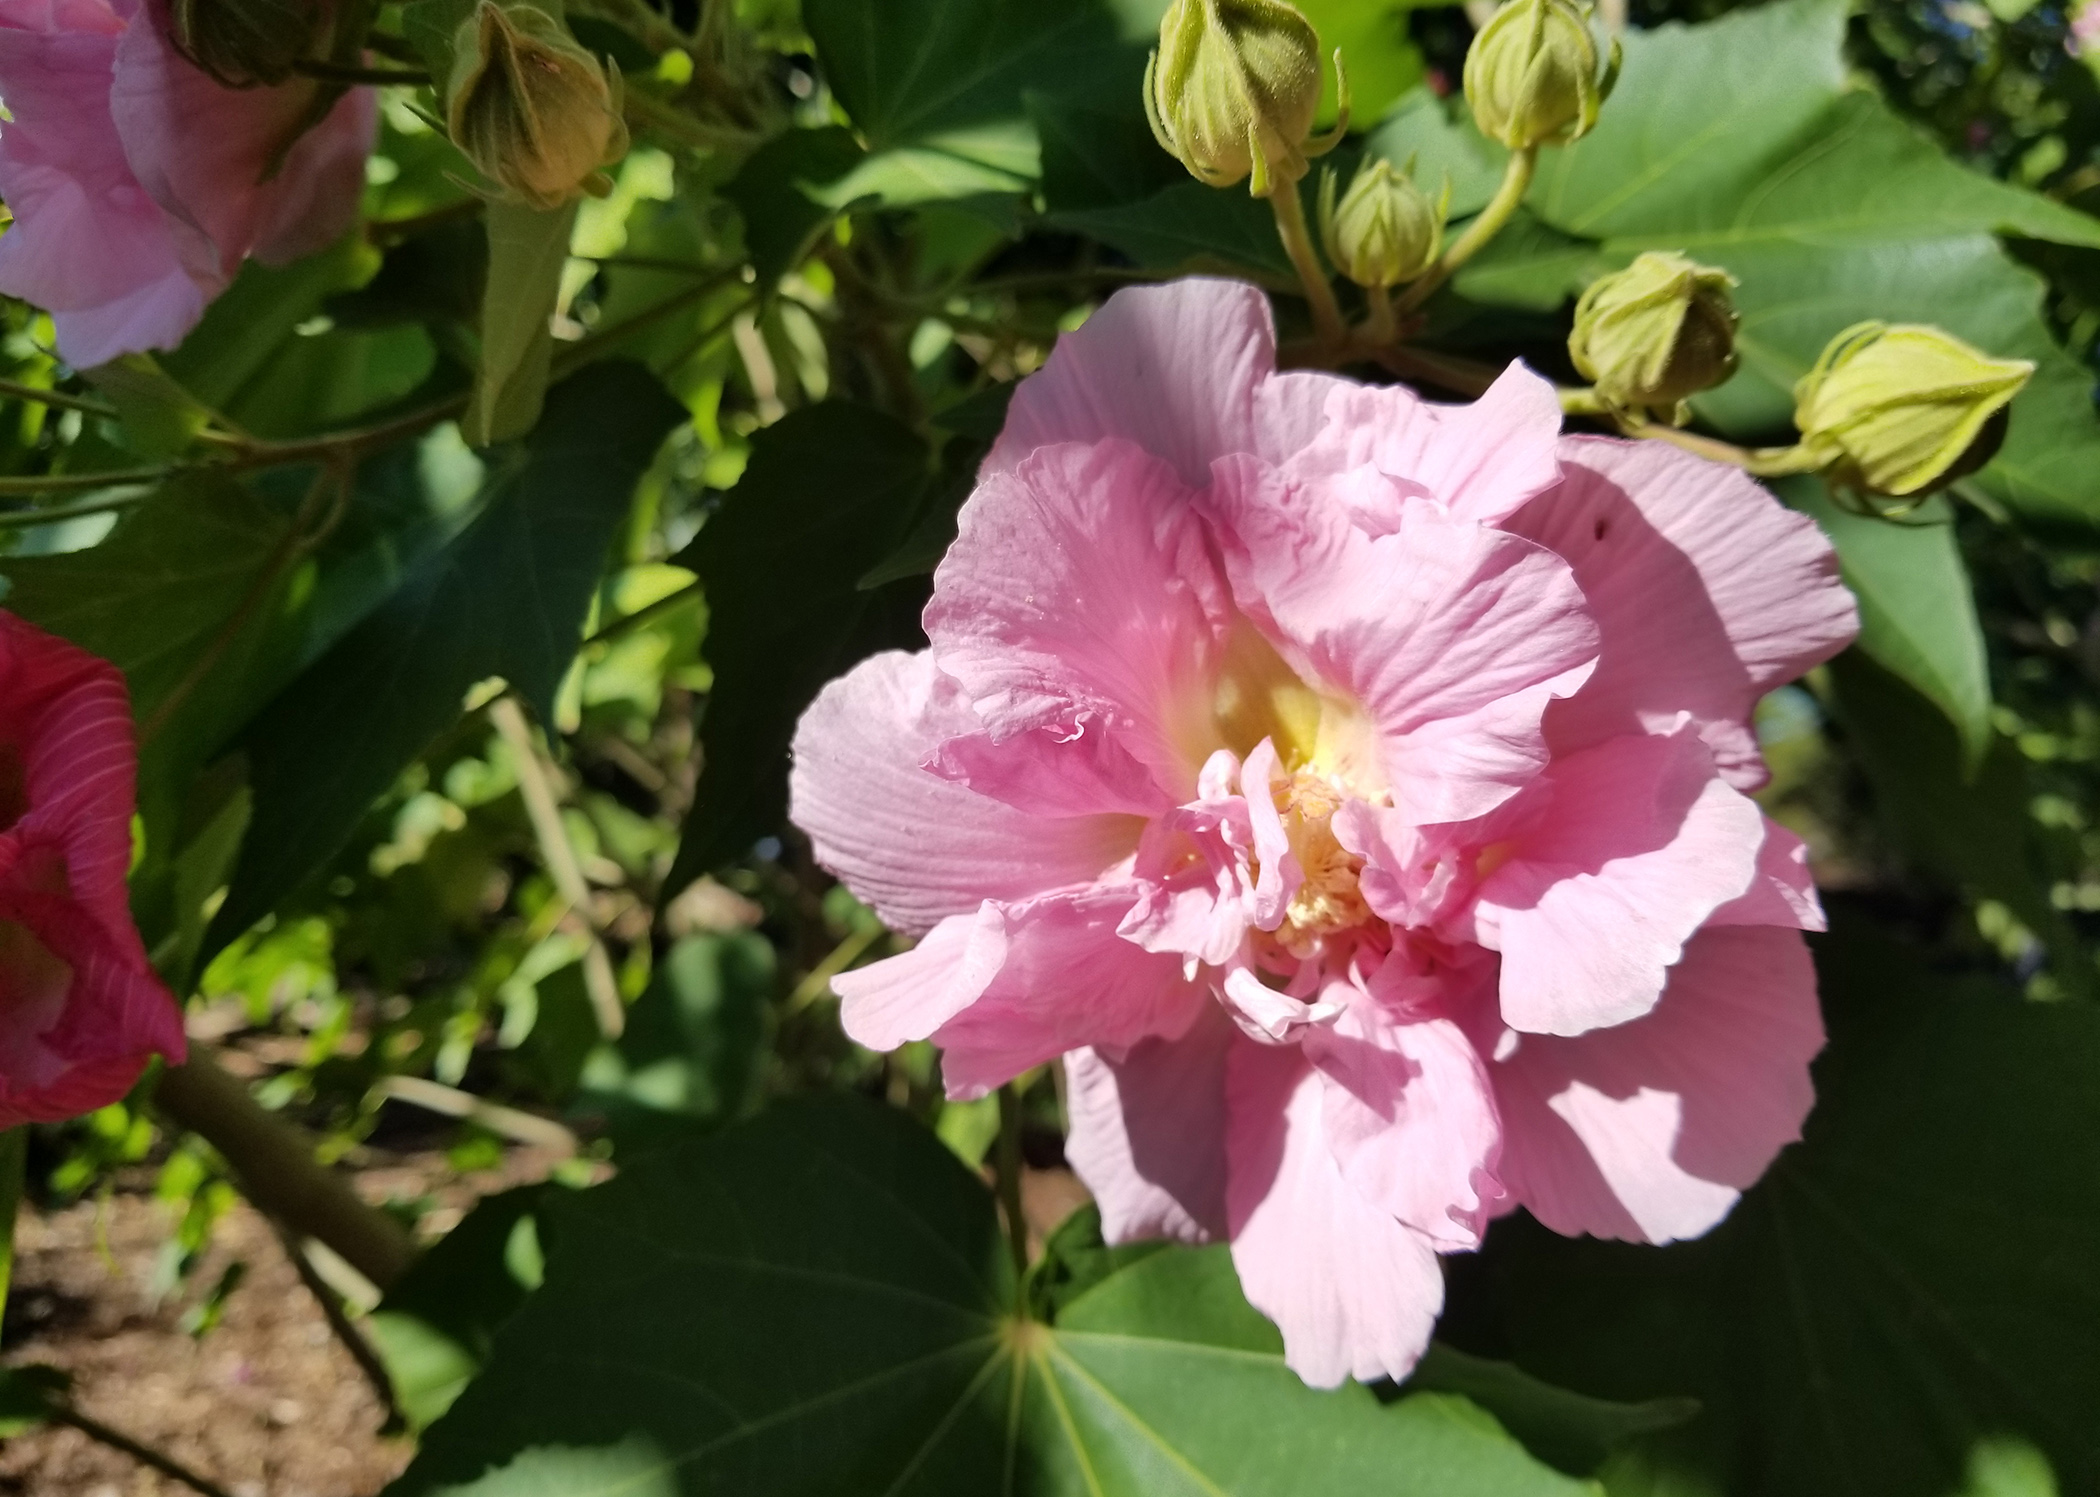 Heirloom confederate rose thrives across state mississippi state confederate rose is an heirloom plant that blooms prolifically in late summer and fall mightylinksfo